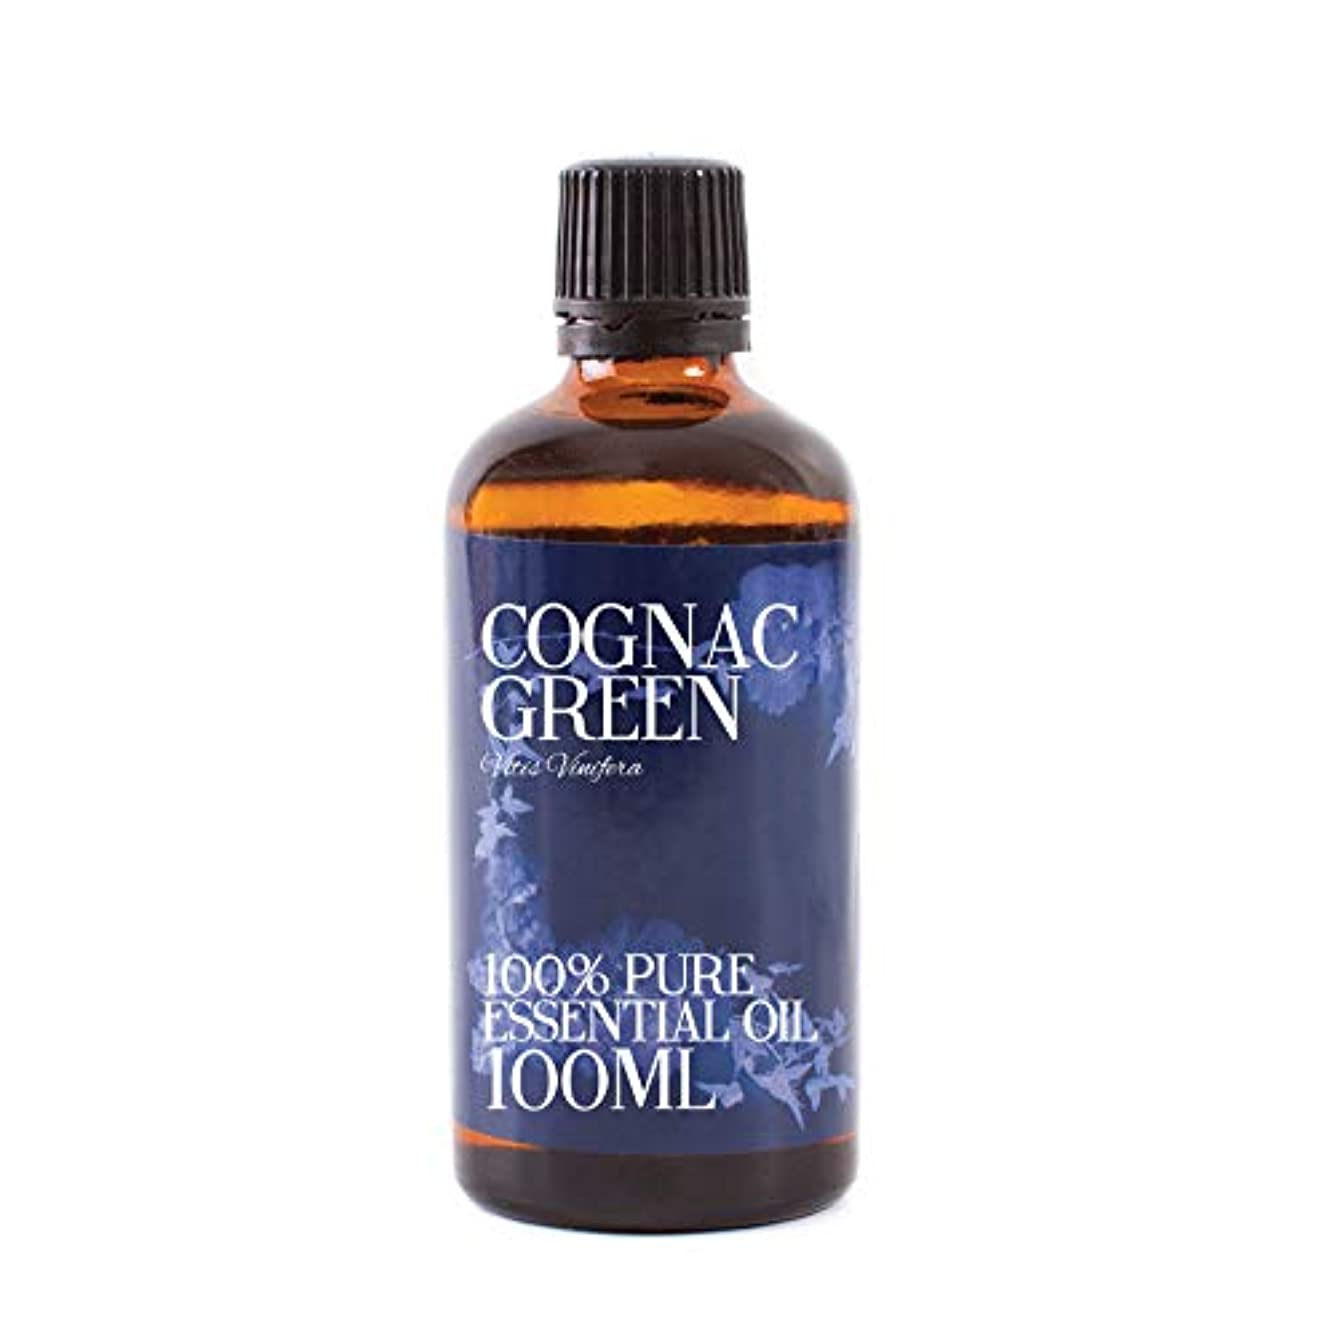 リビジョン売る思いつくMystic Moments | Cognac Green Essential Oil - 100ml - 100% Pure